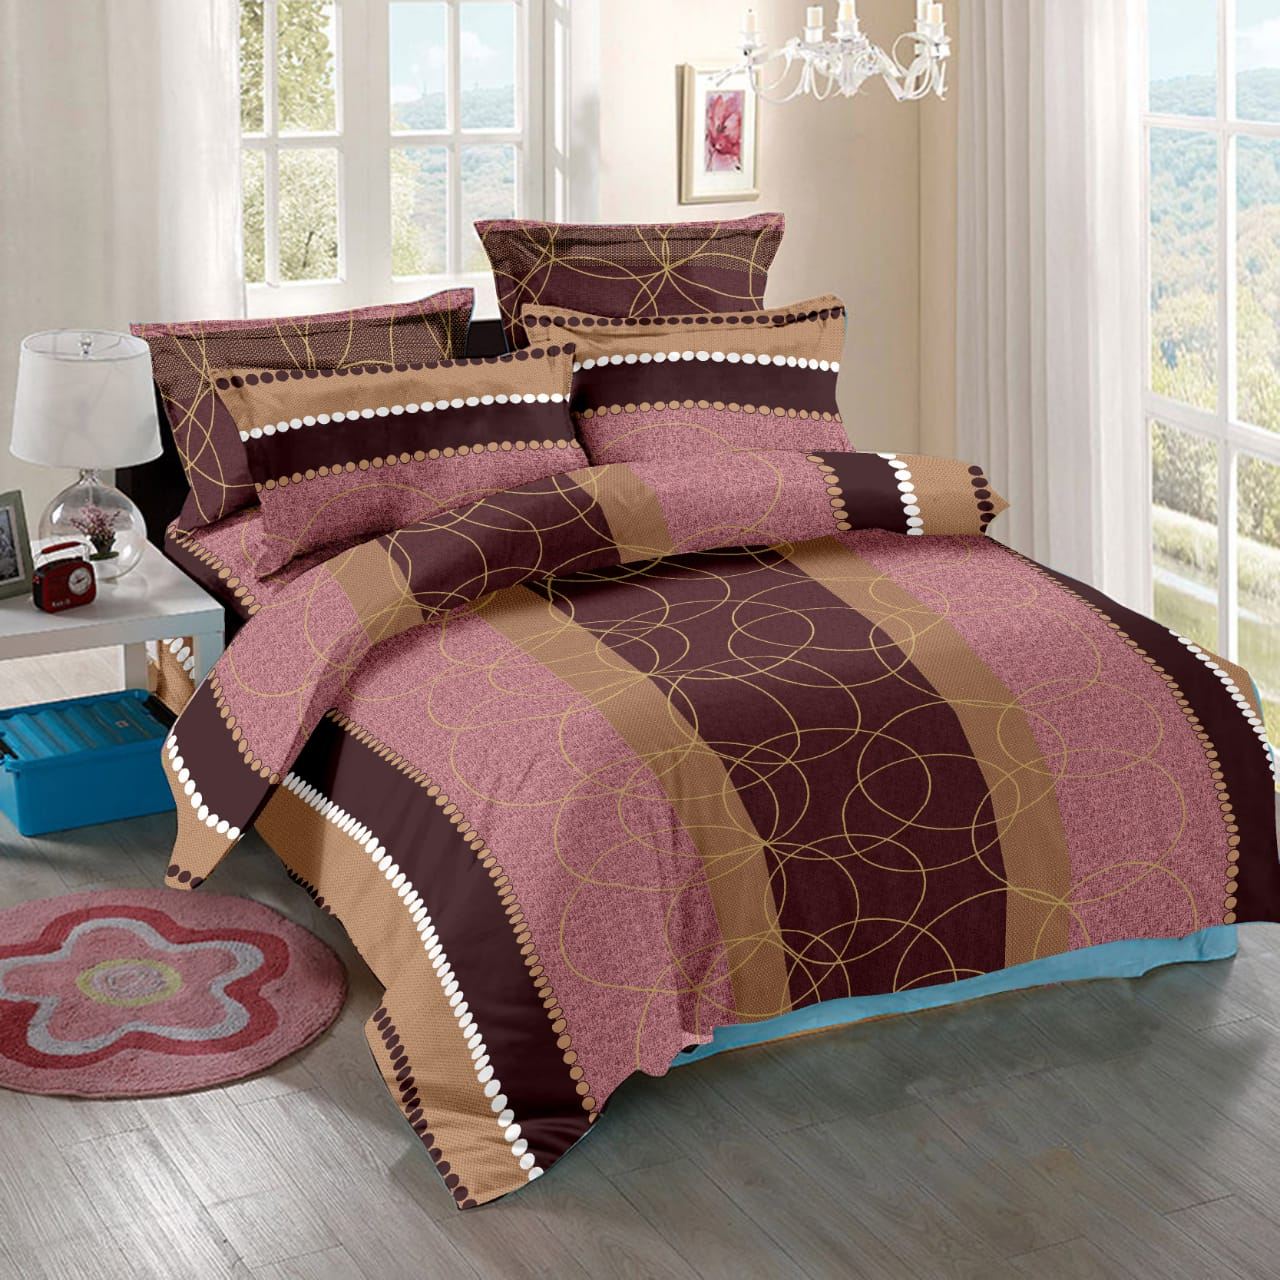 AKR CREATION BOMBAY DYING DOUBLE Bedsheet king size 108 Inch X 108 Inch  (1 Double Bedsheet, 2 Pillow Covers)